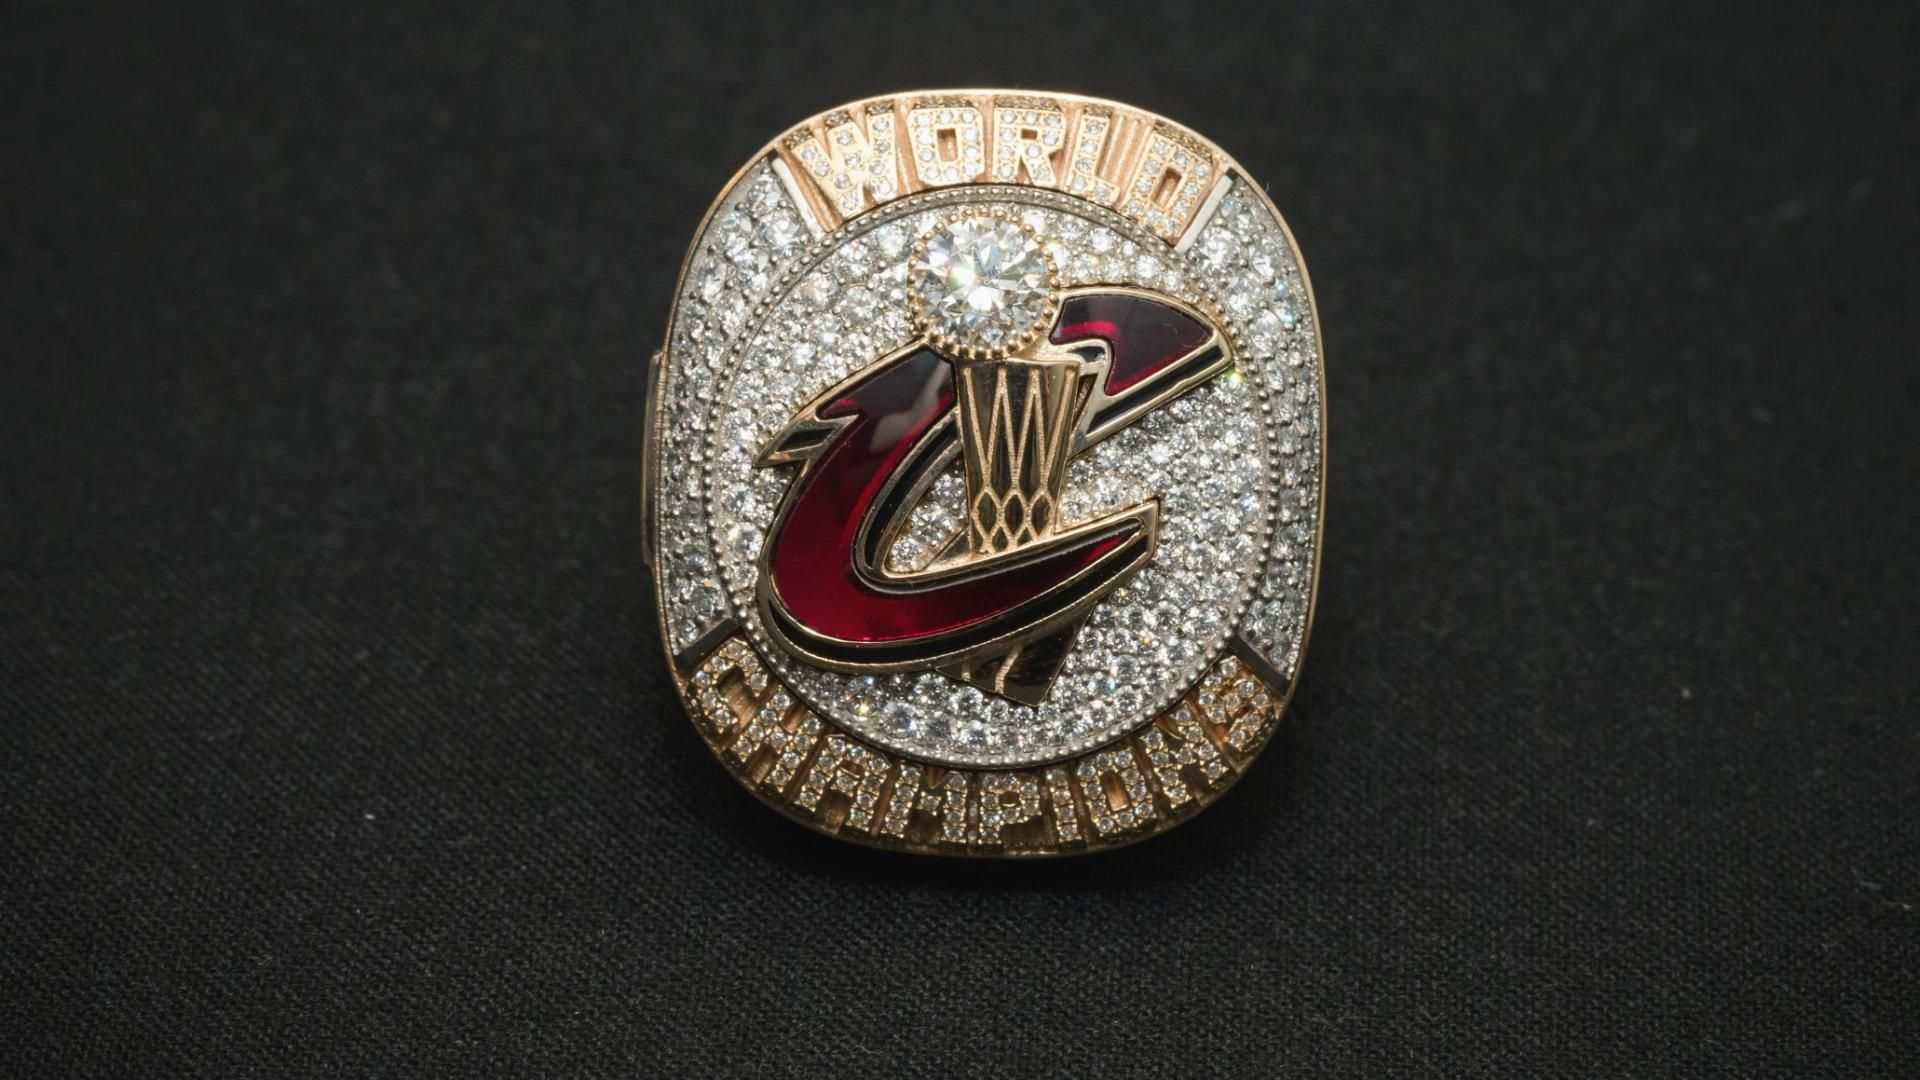 Cavs celebrate championship with ring ceremony